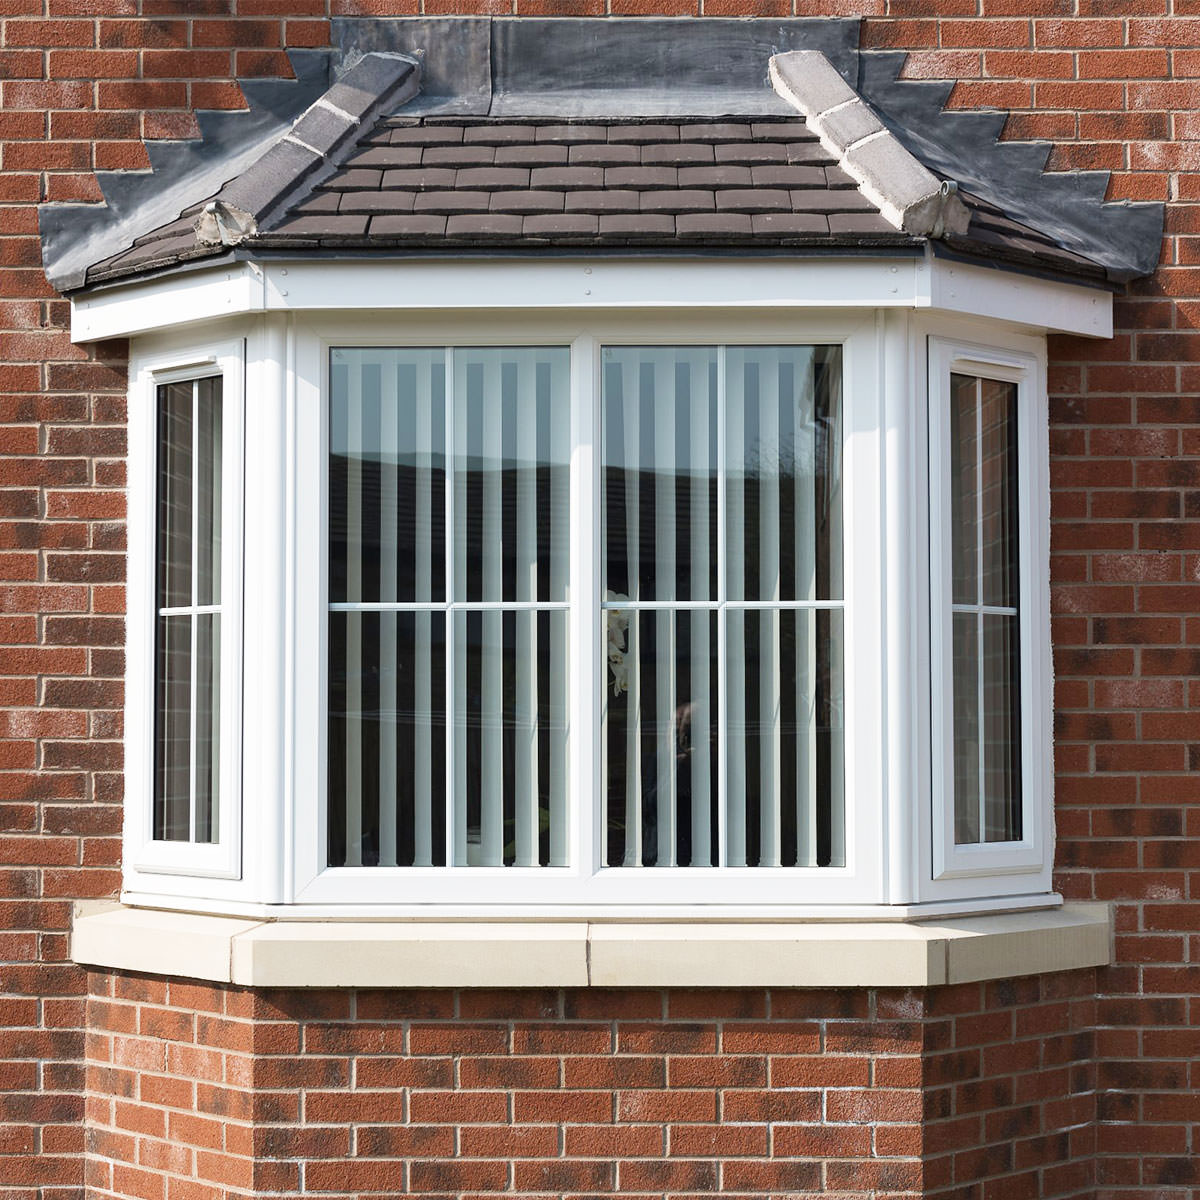 upvc bow and bay windows sutton double glazed windows bay window features bay windows amp bow windows by window